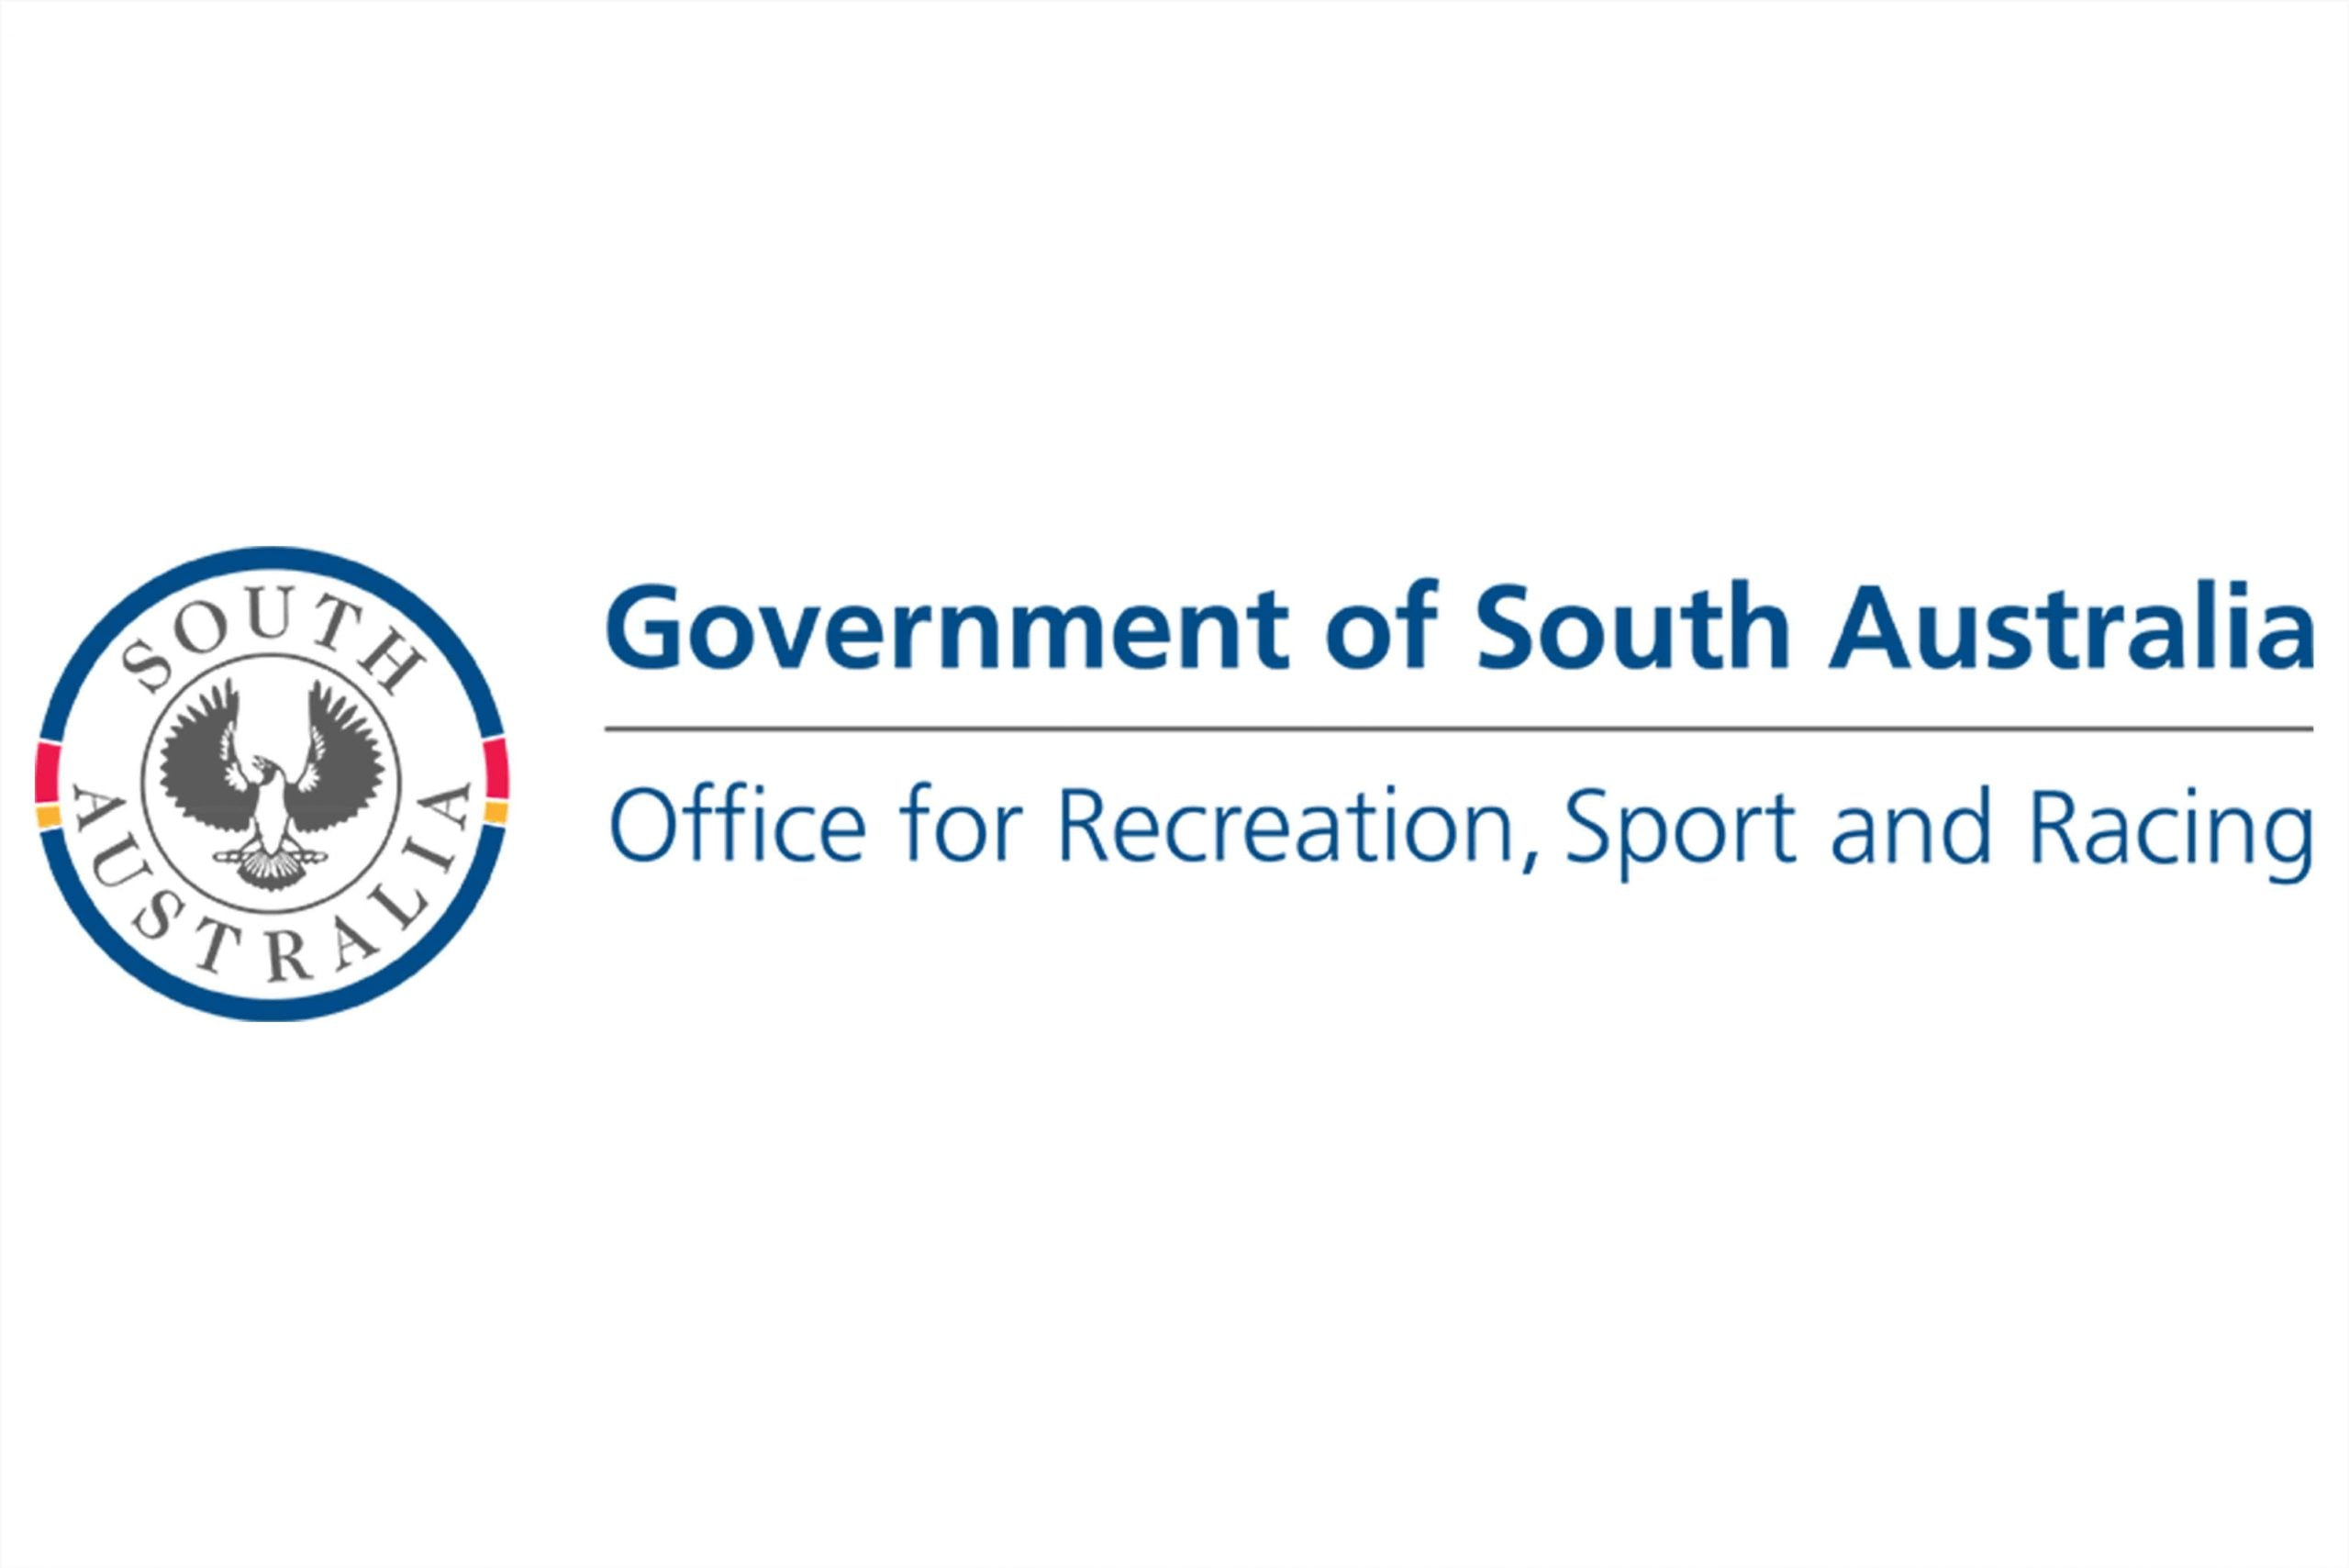 Government of South Australia Office for Recreation Sport and Racing logo on a white background